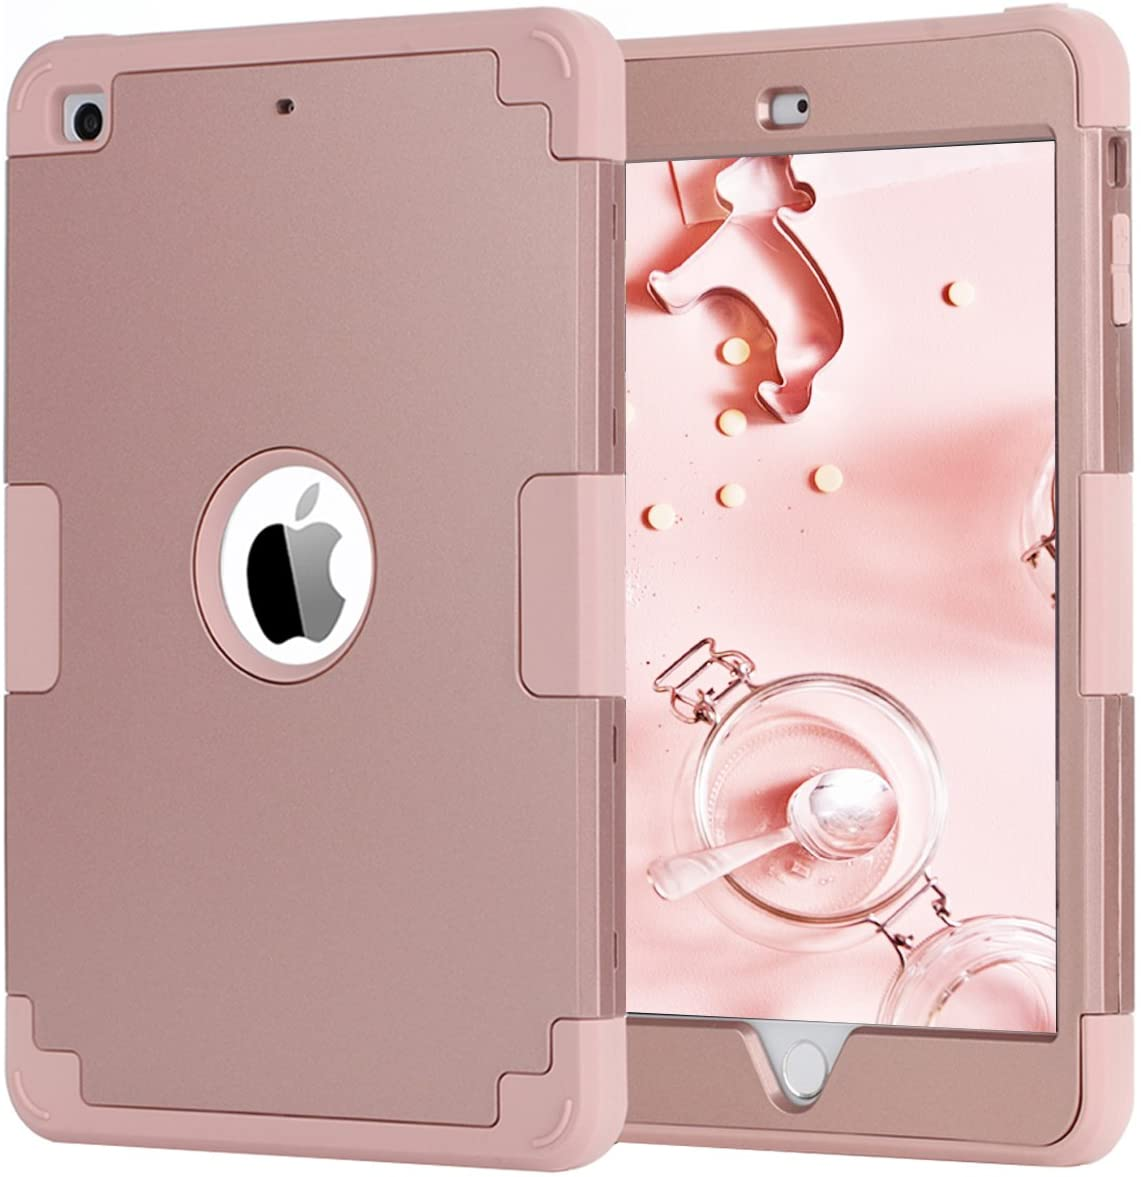 iPad mini Case,iPad mini 2 Case,iPad mini 3 Case,iPad mini Retina Case,BENTOBEN Anti-slip Shock-Absorption Silicone High Impact Resistant Hybrid Three Layer Armor Protective Case Cover Rose Gold Pink